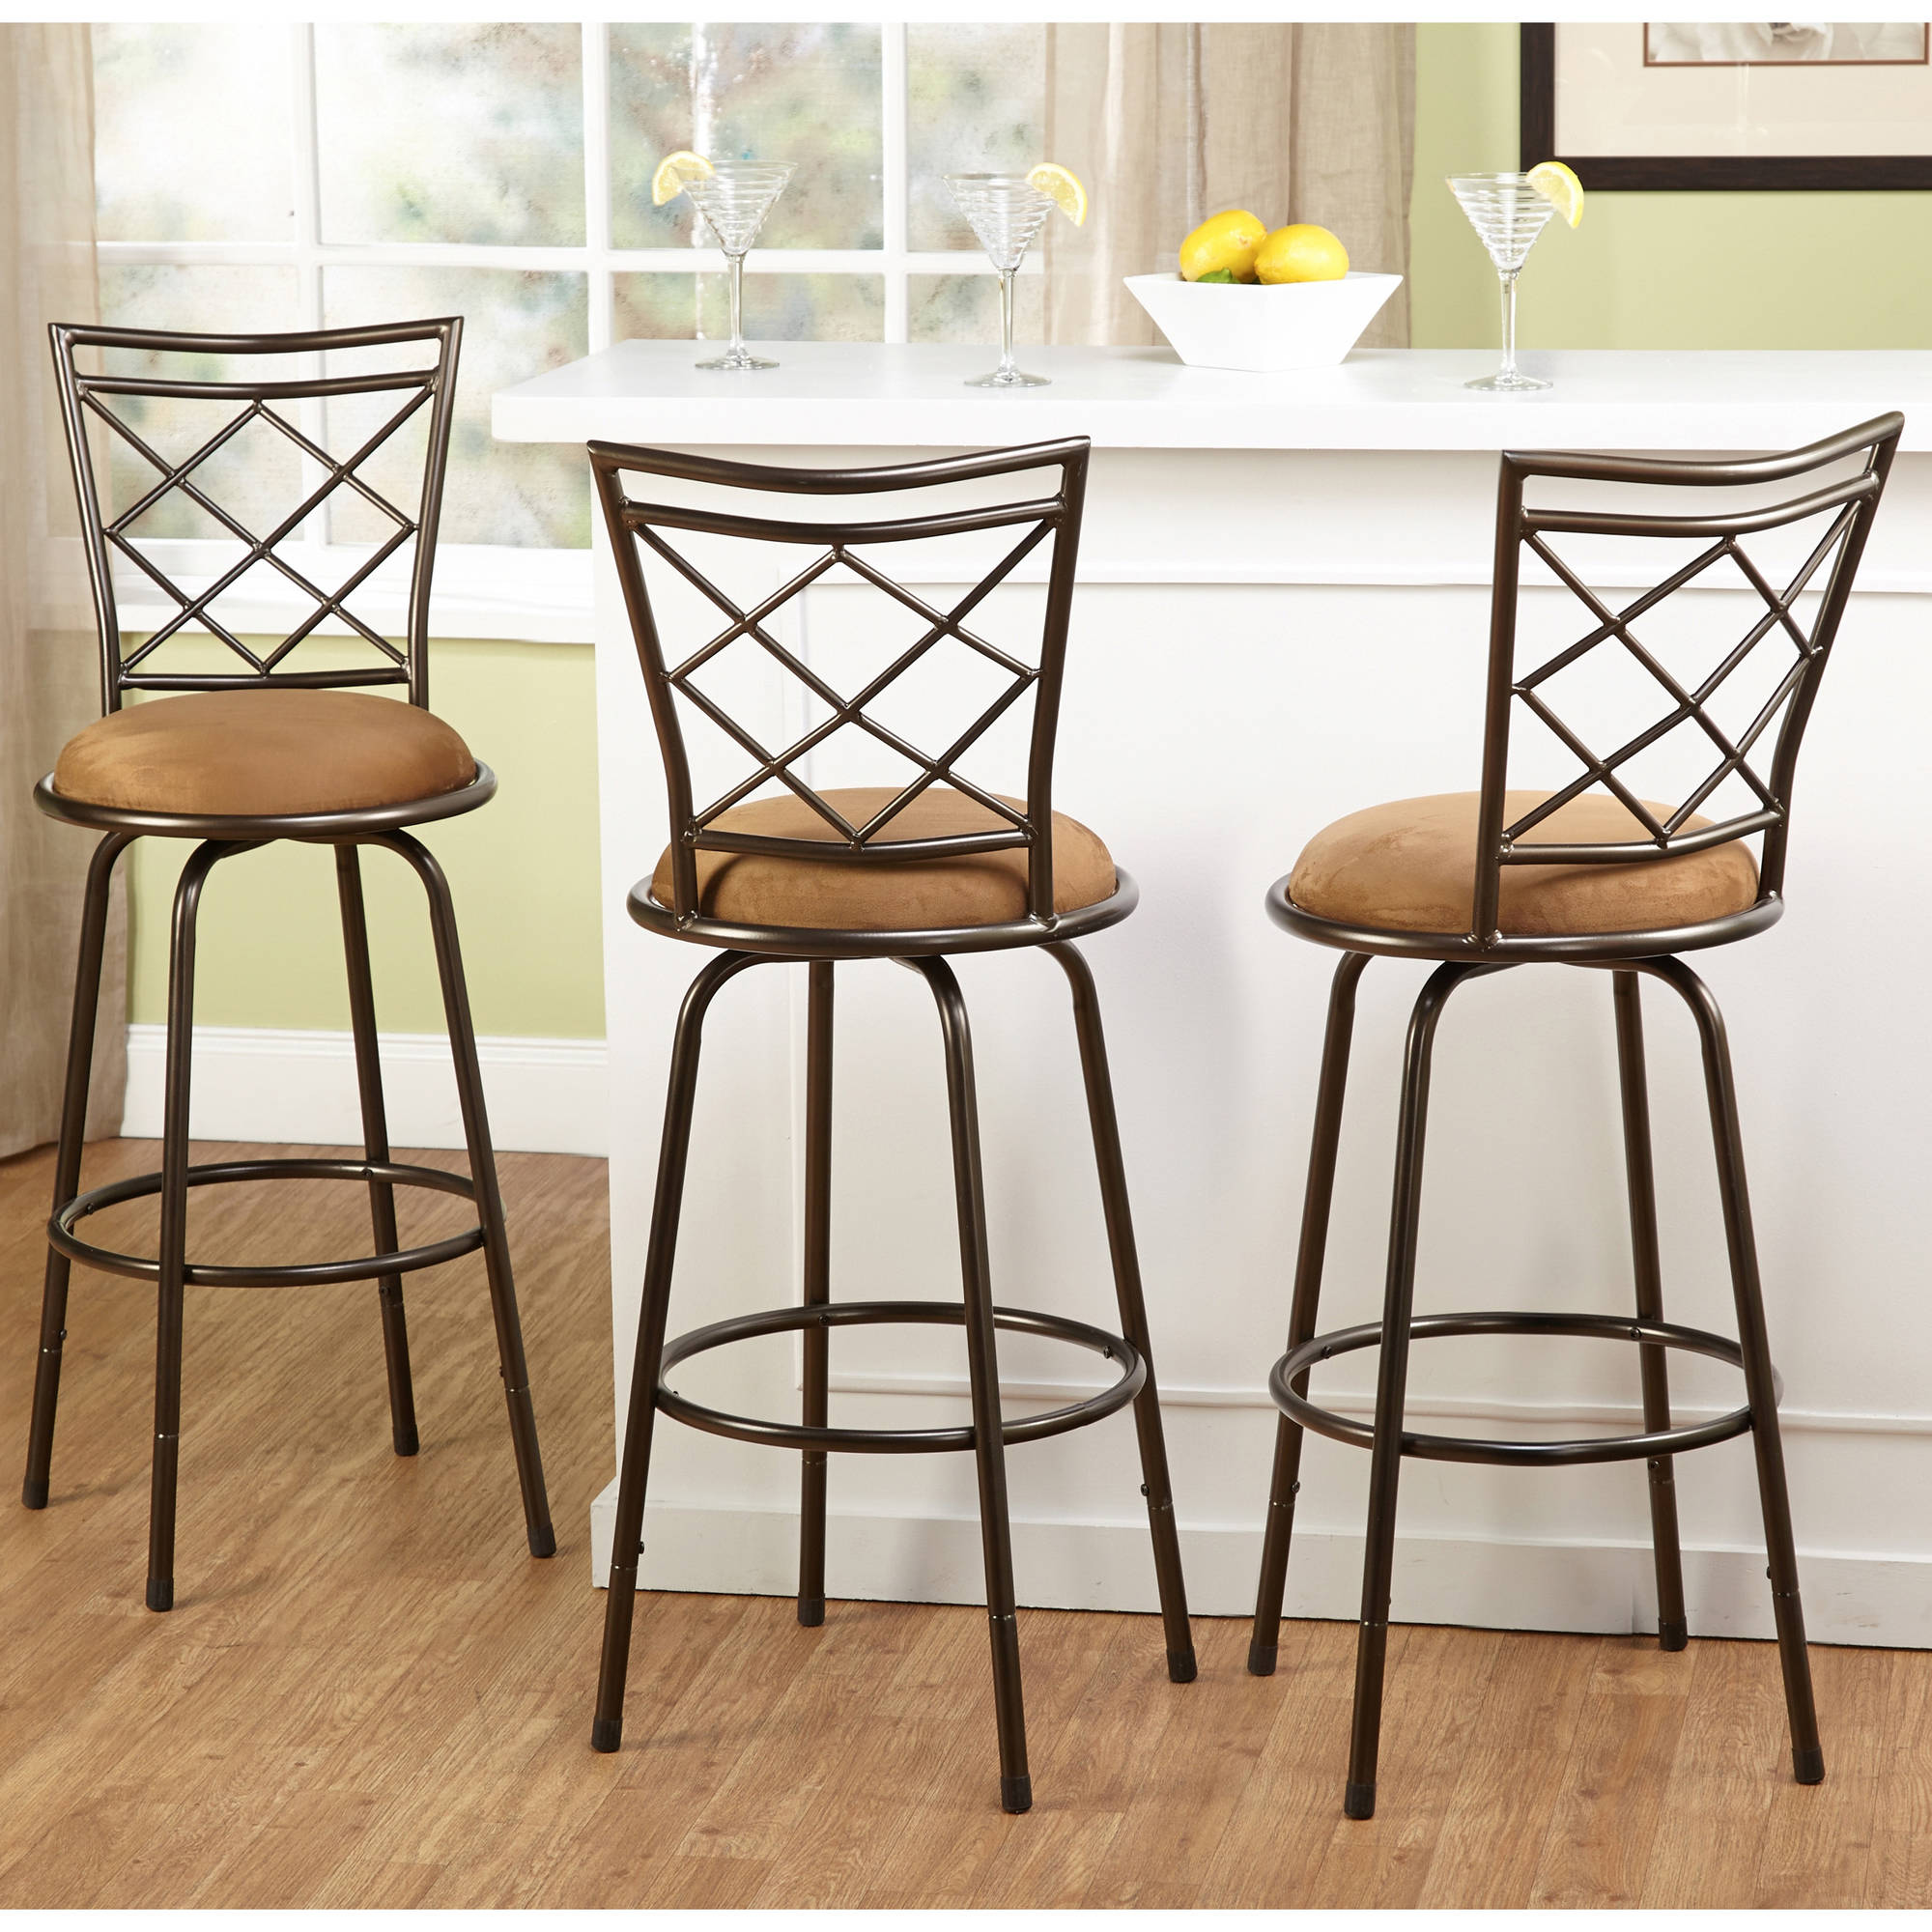 Tms Avery Adjule Height Bar Stool Multiple Colors Set Of 3